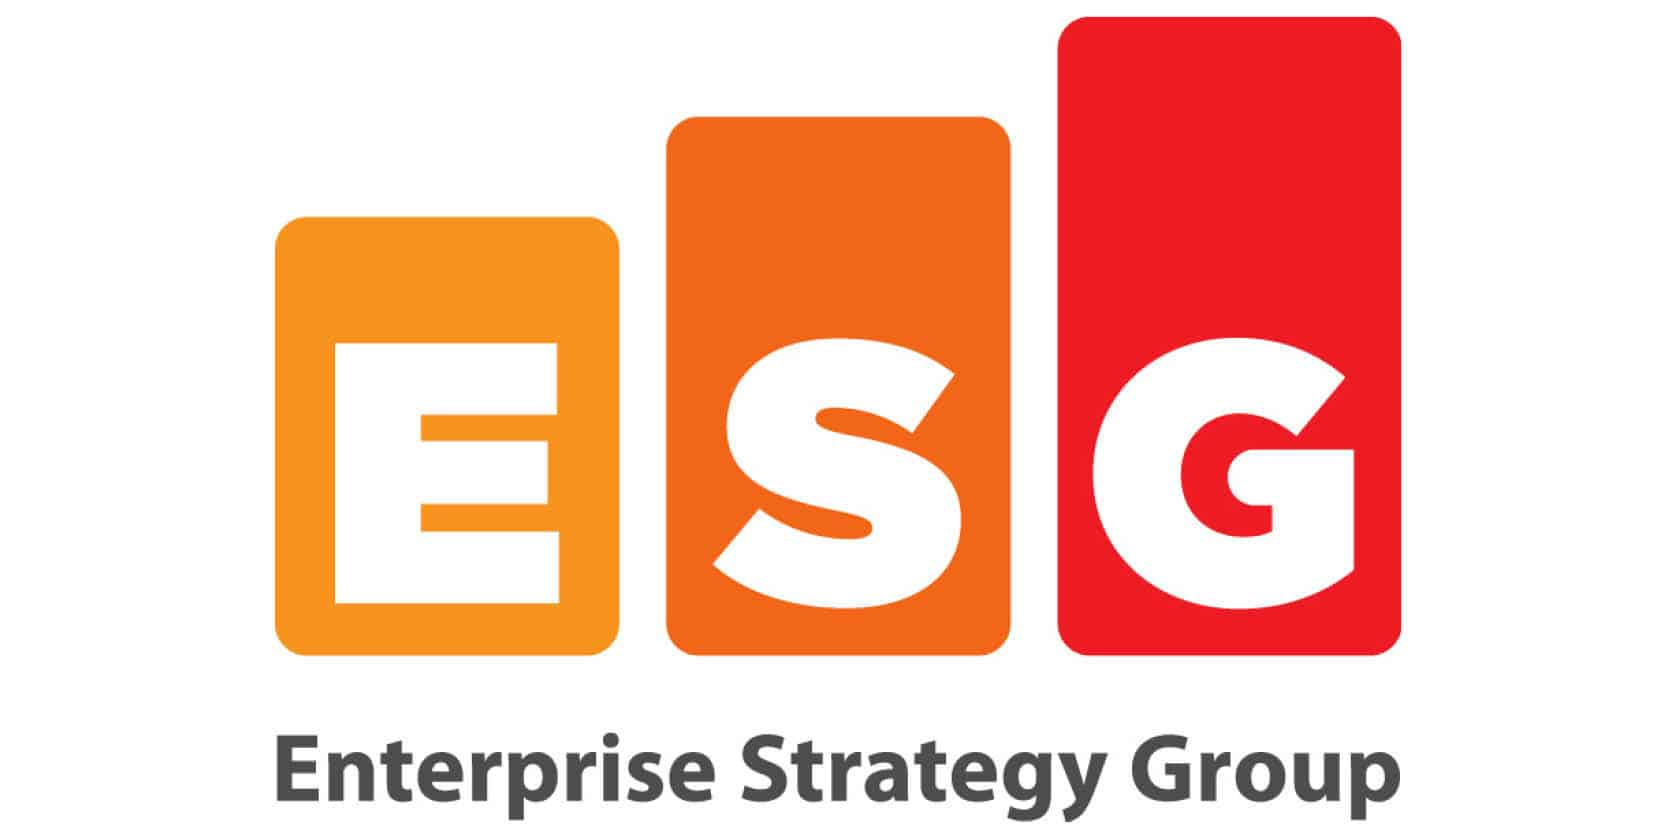 Enterprise Strategy Group Reports The Pressing Need for Digital Risk Management